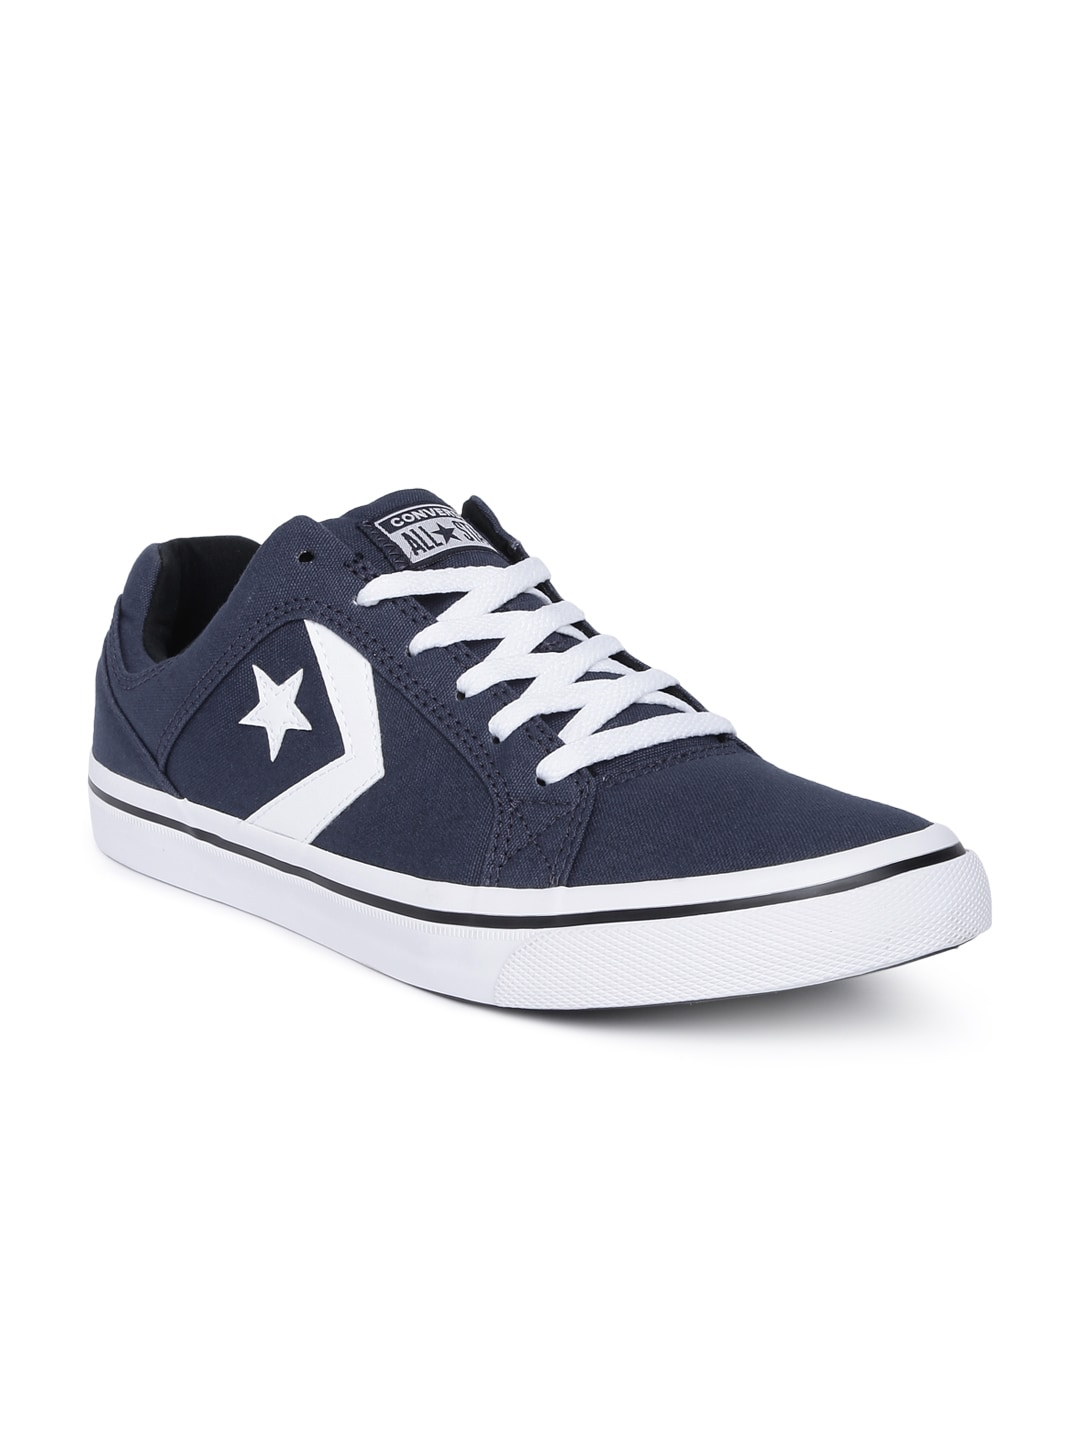 Converse Shoes - Buy Converse Canvas Shoes   Sneakers Online d4bc8c9642